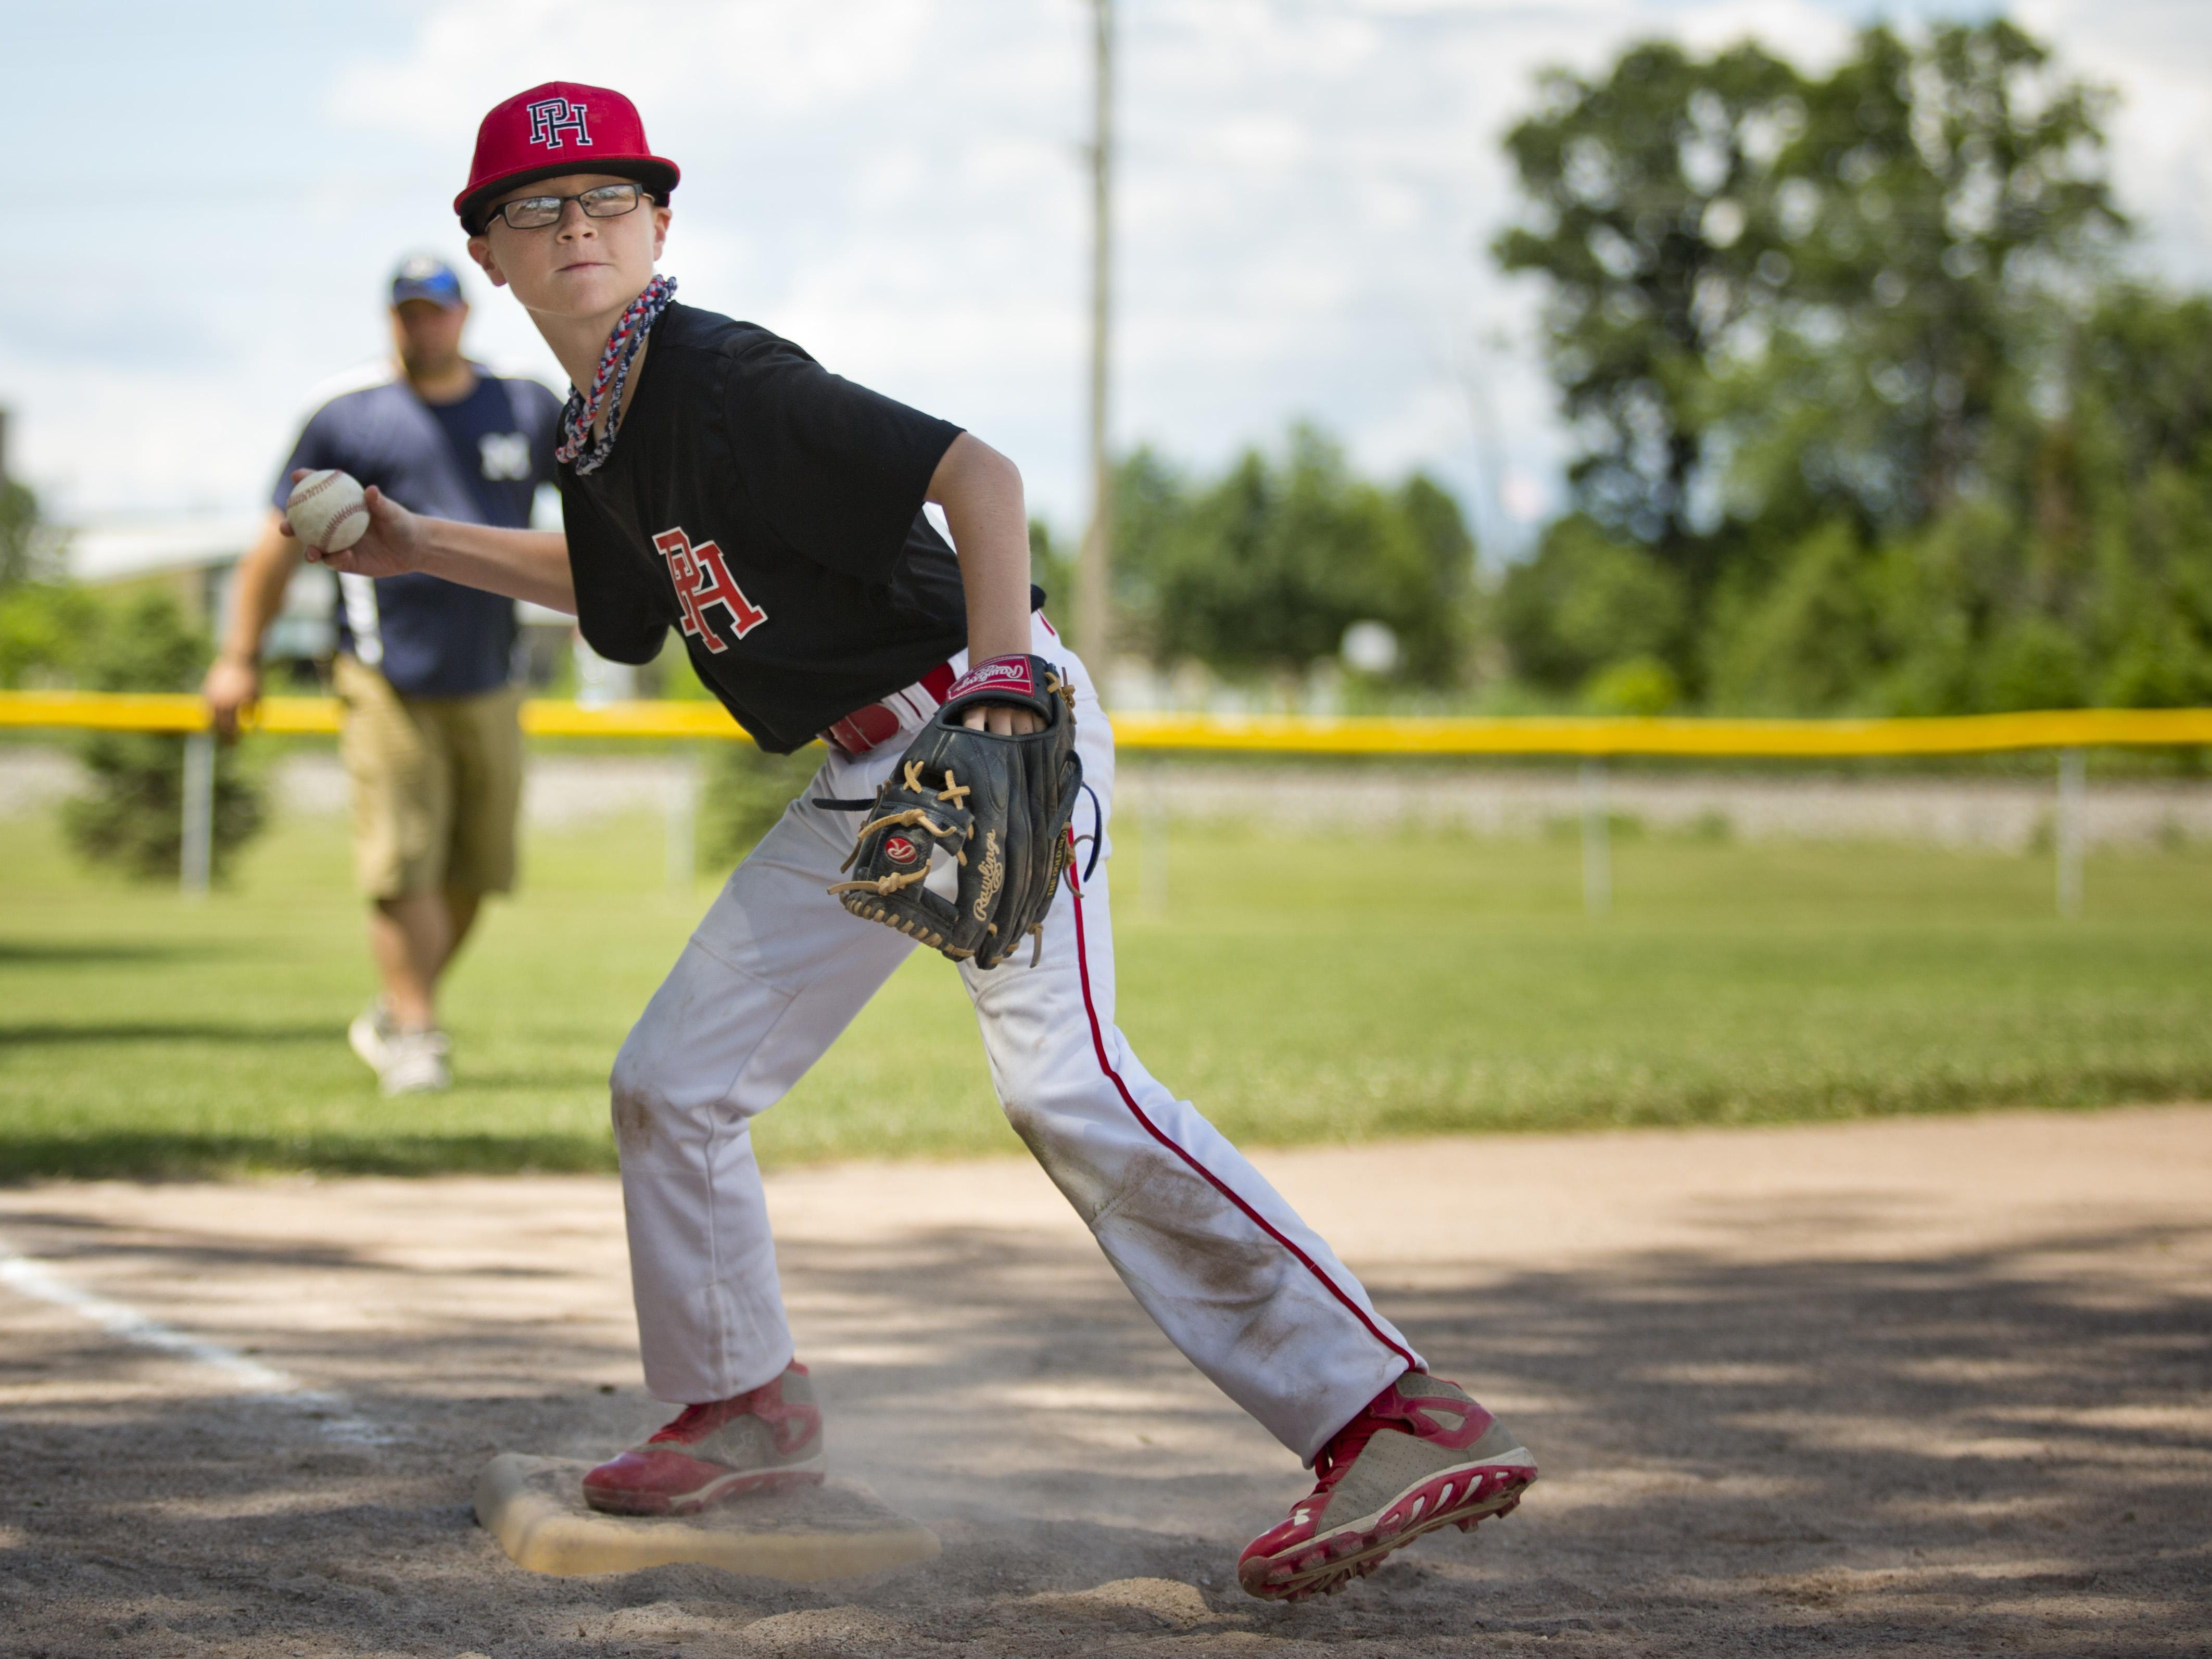 Brayden Albers, 10, throws the ball to home while competing in throwing with his Port Huron teammates during a Little League skills competition Saturday, August 1, 2015 at Marysville City Park.